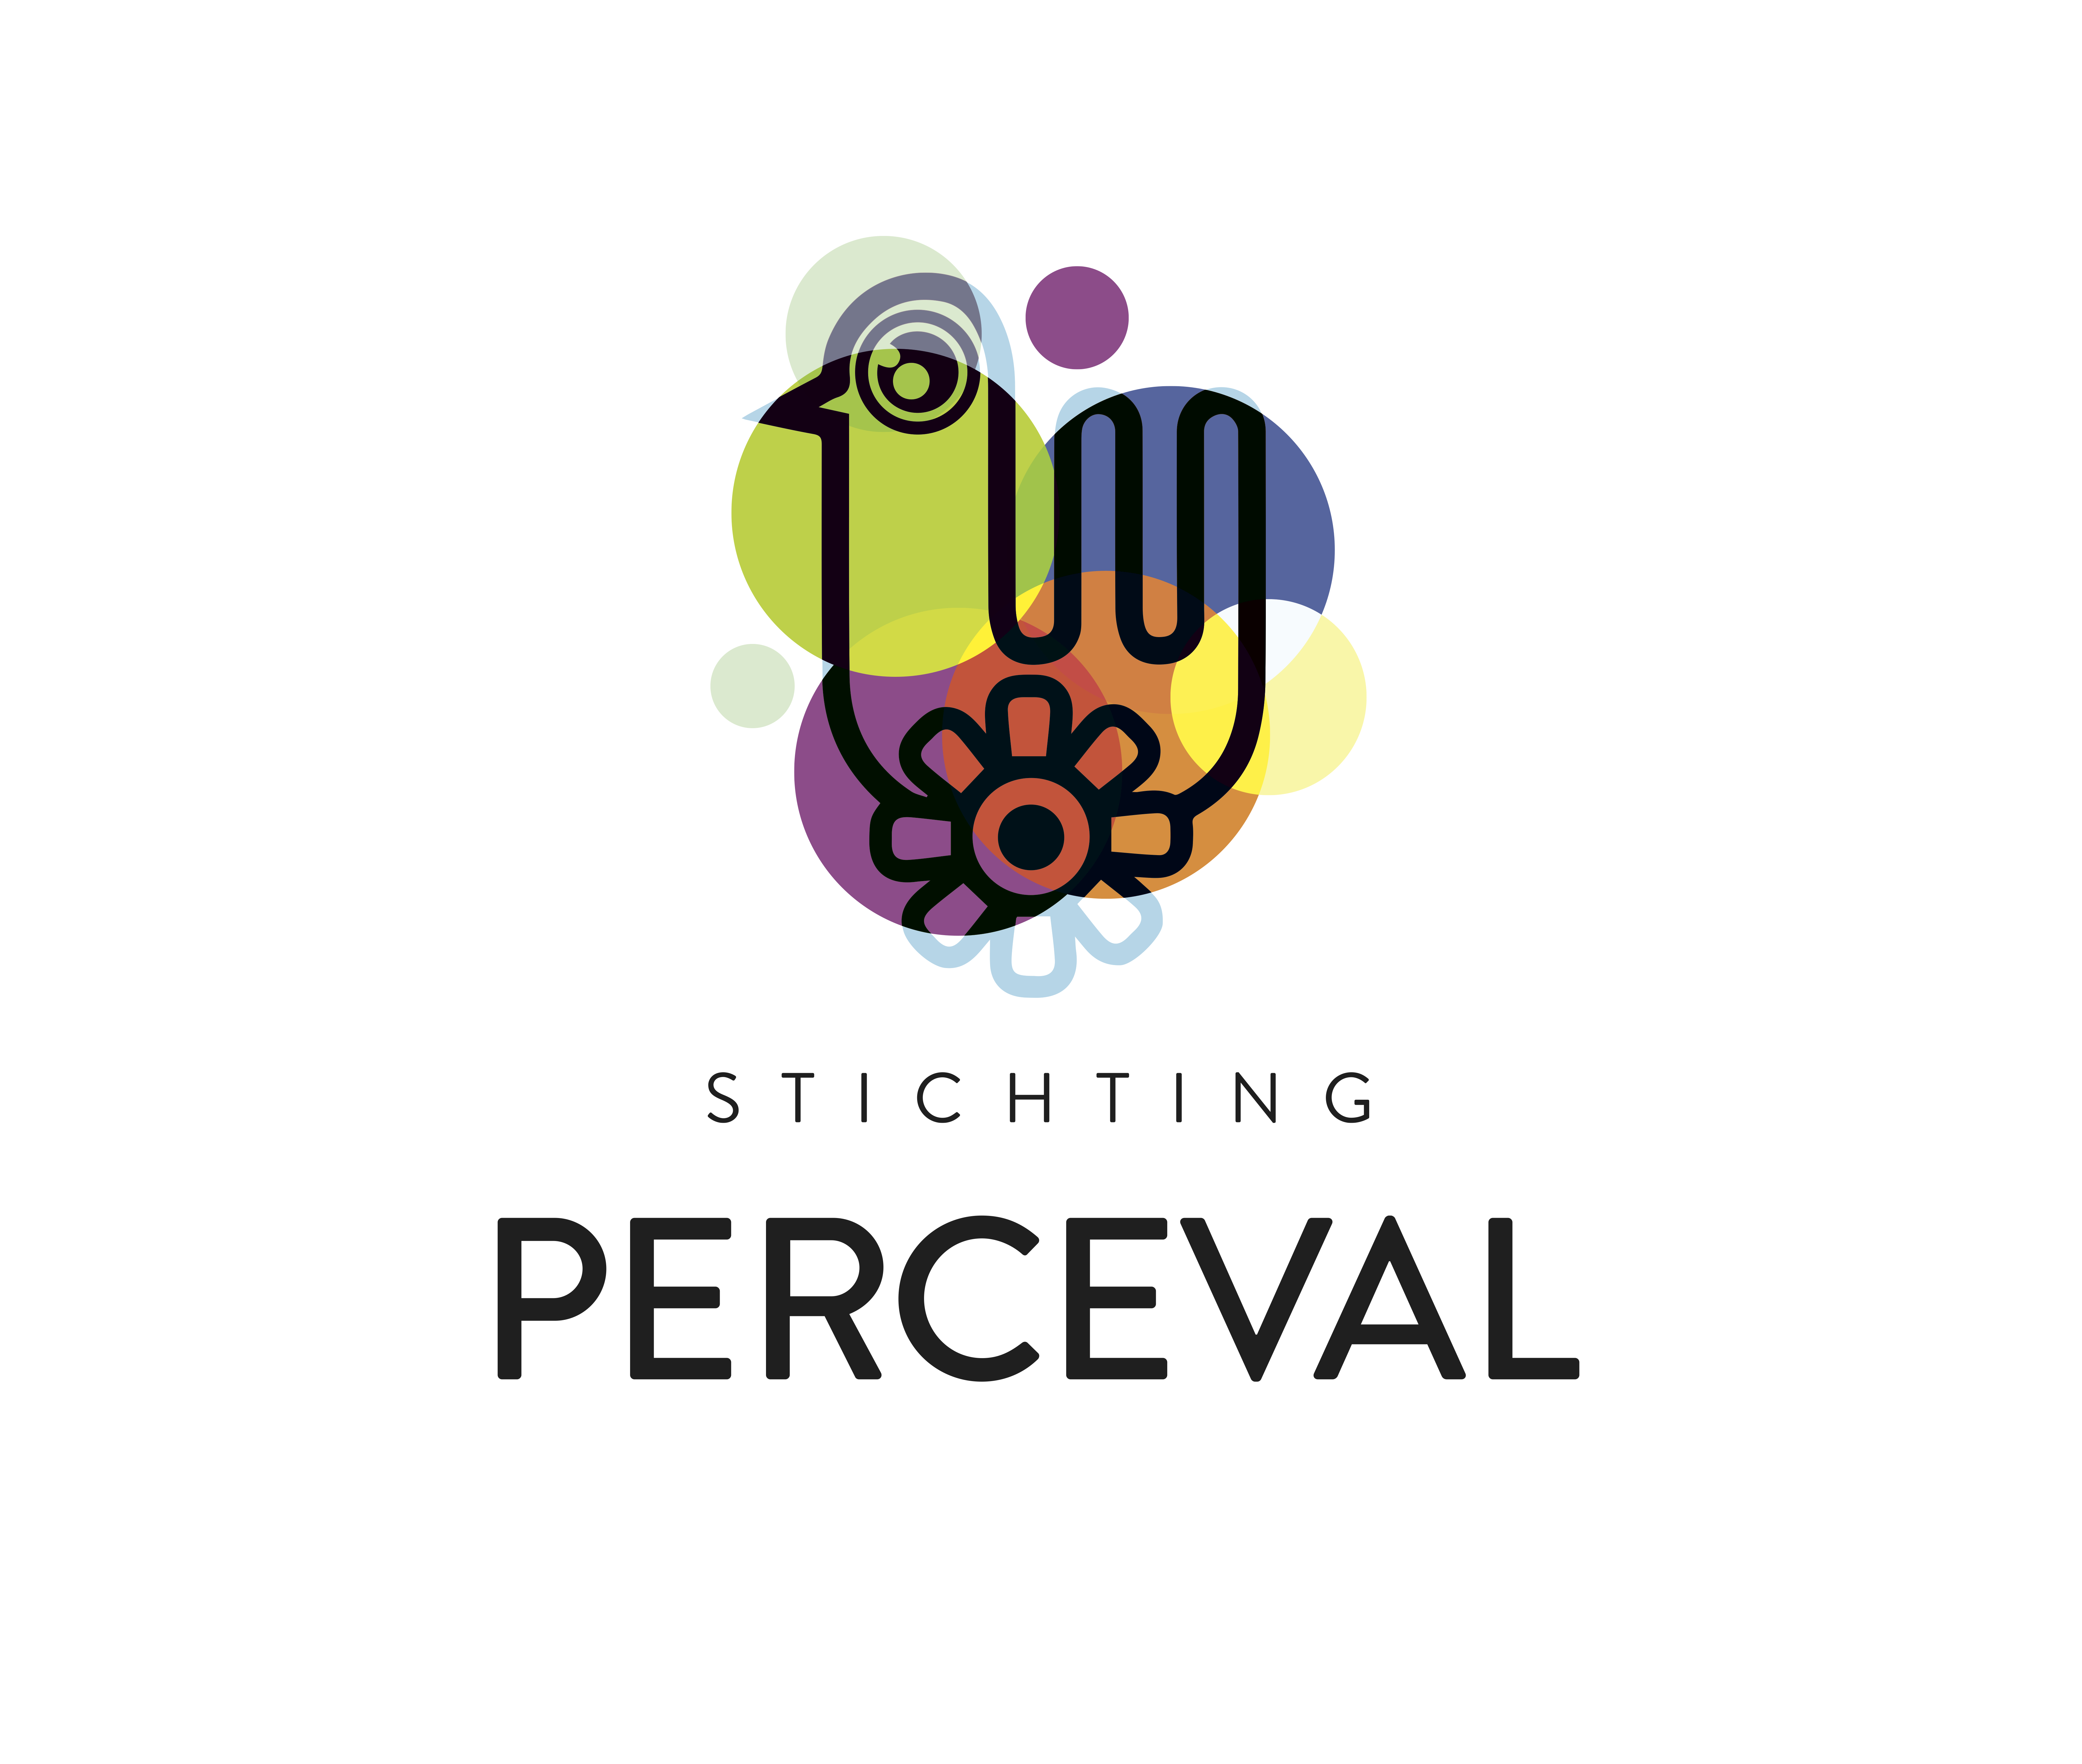 Stichting Perceval